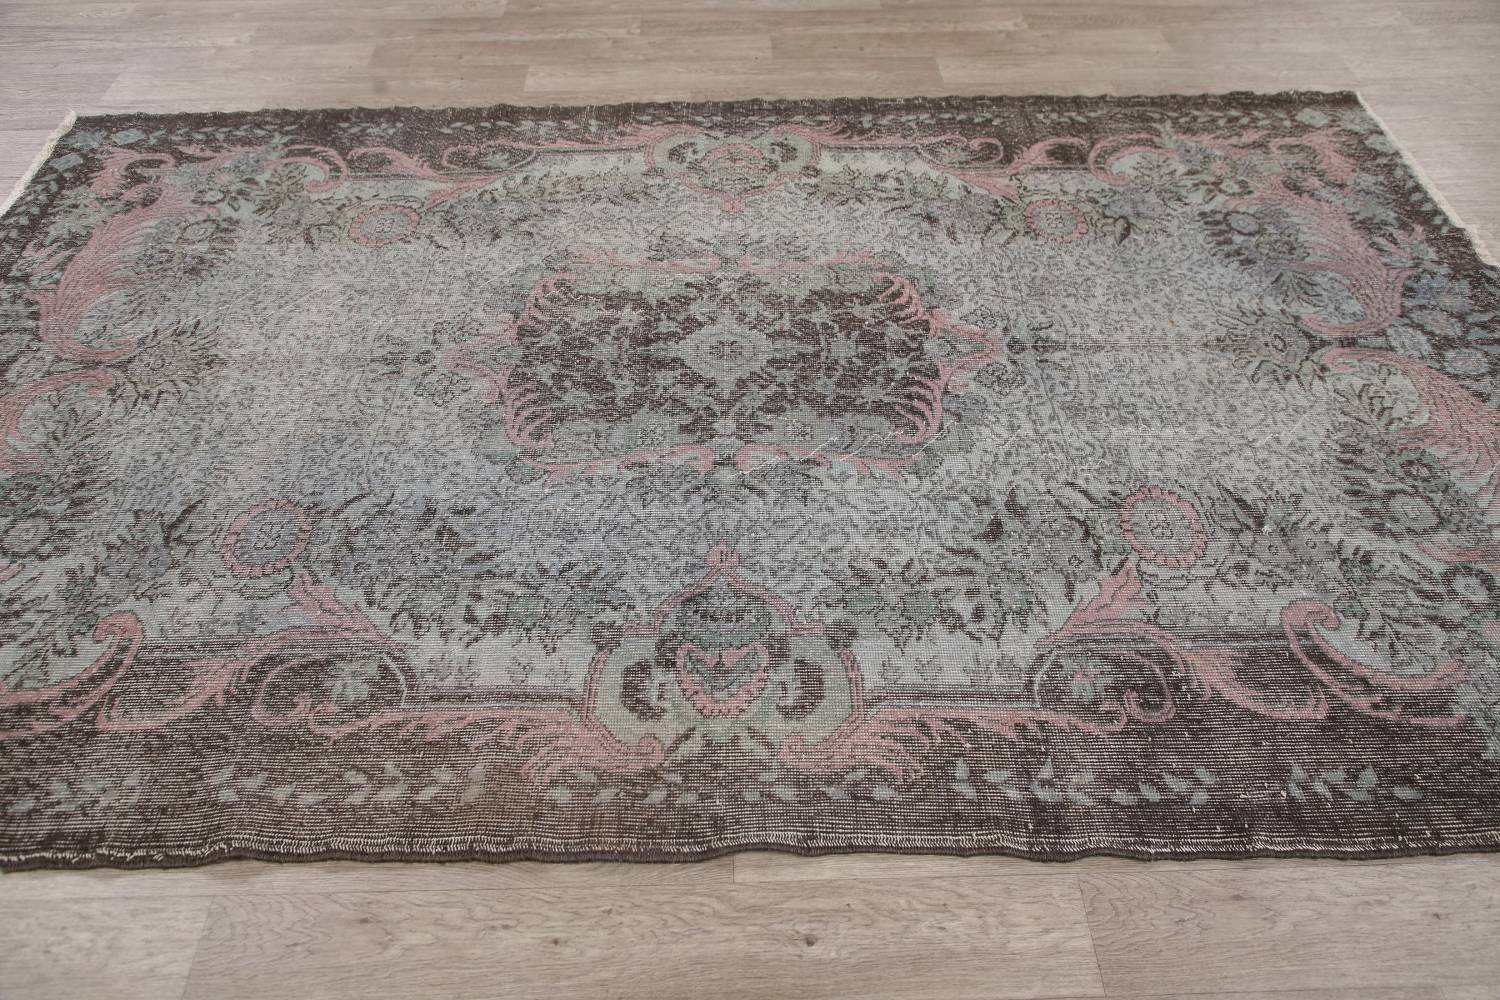 Antique Muted Distressed Aubusson Oriental Area Rug 6x10 image 15